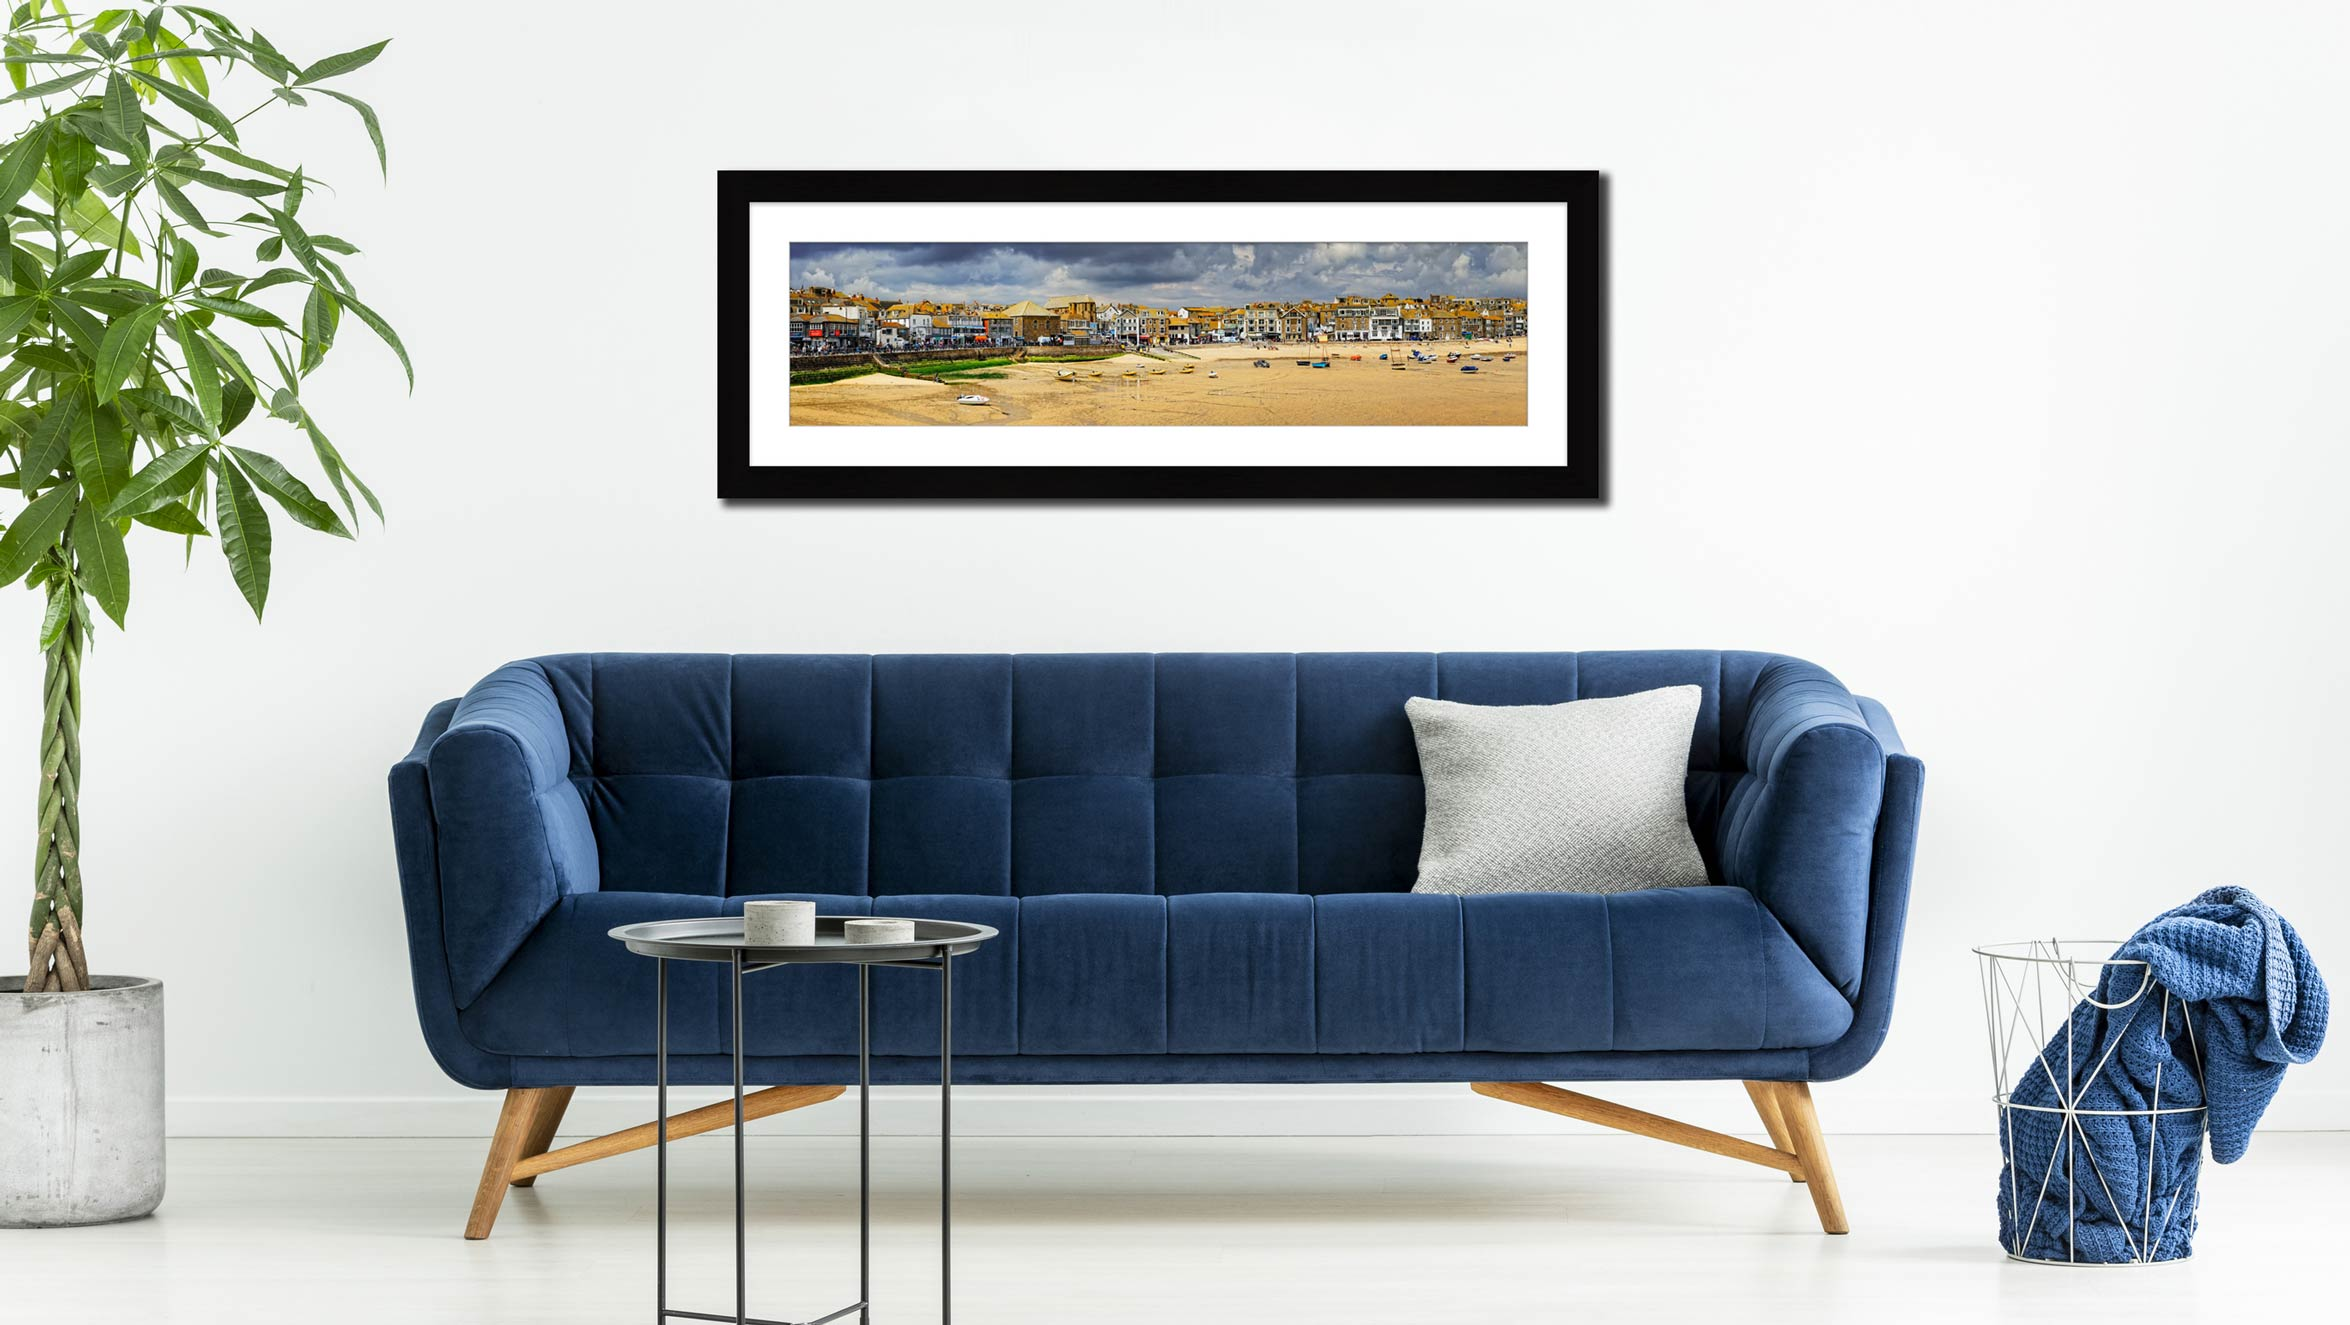 St Ives Harbour Beach - Framed Print with Mount on Wall